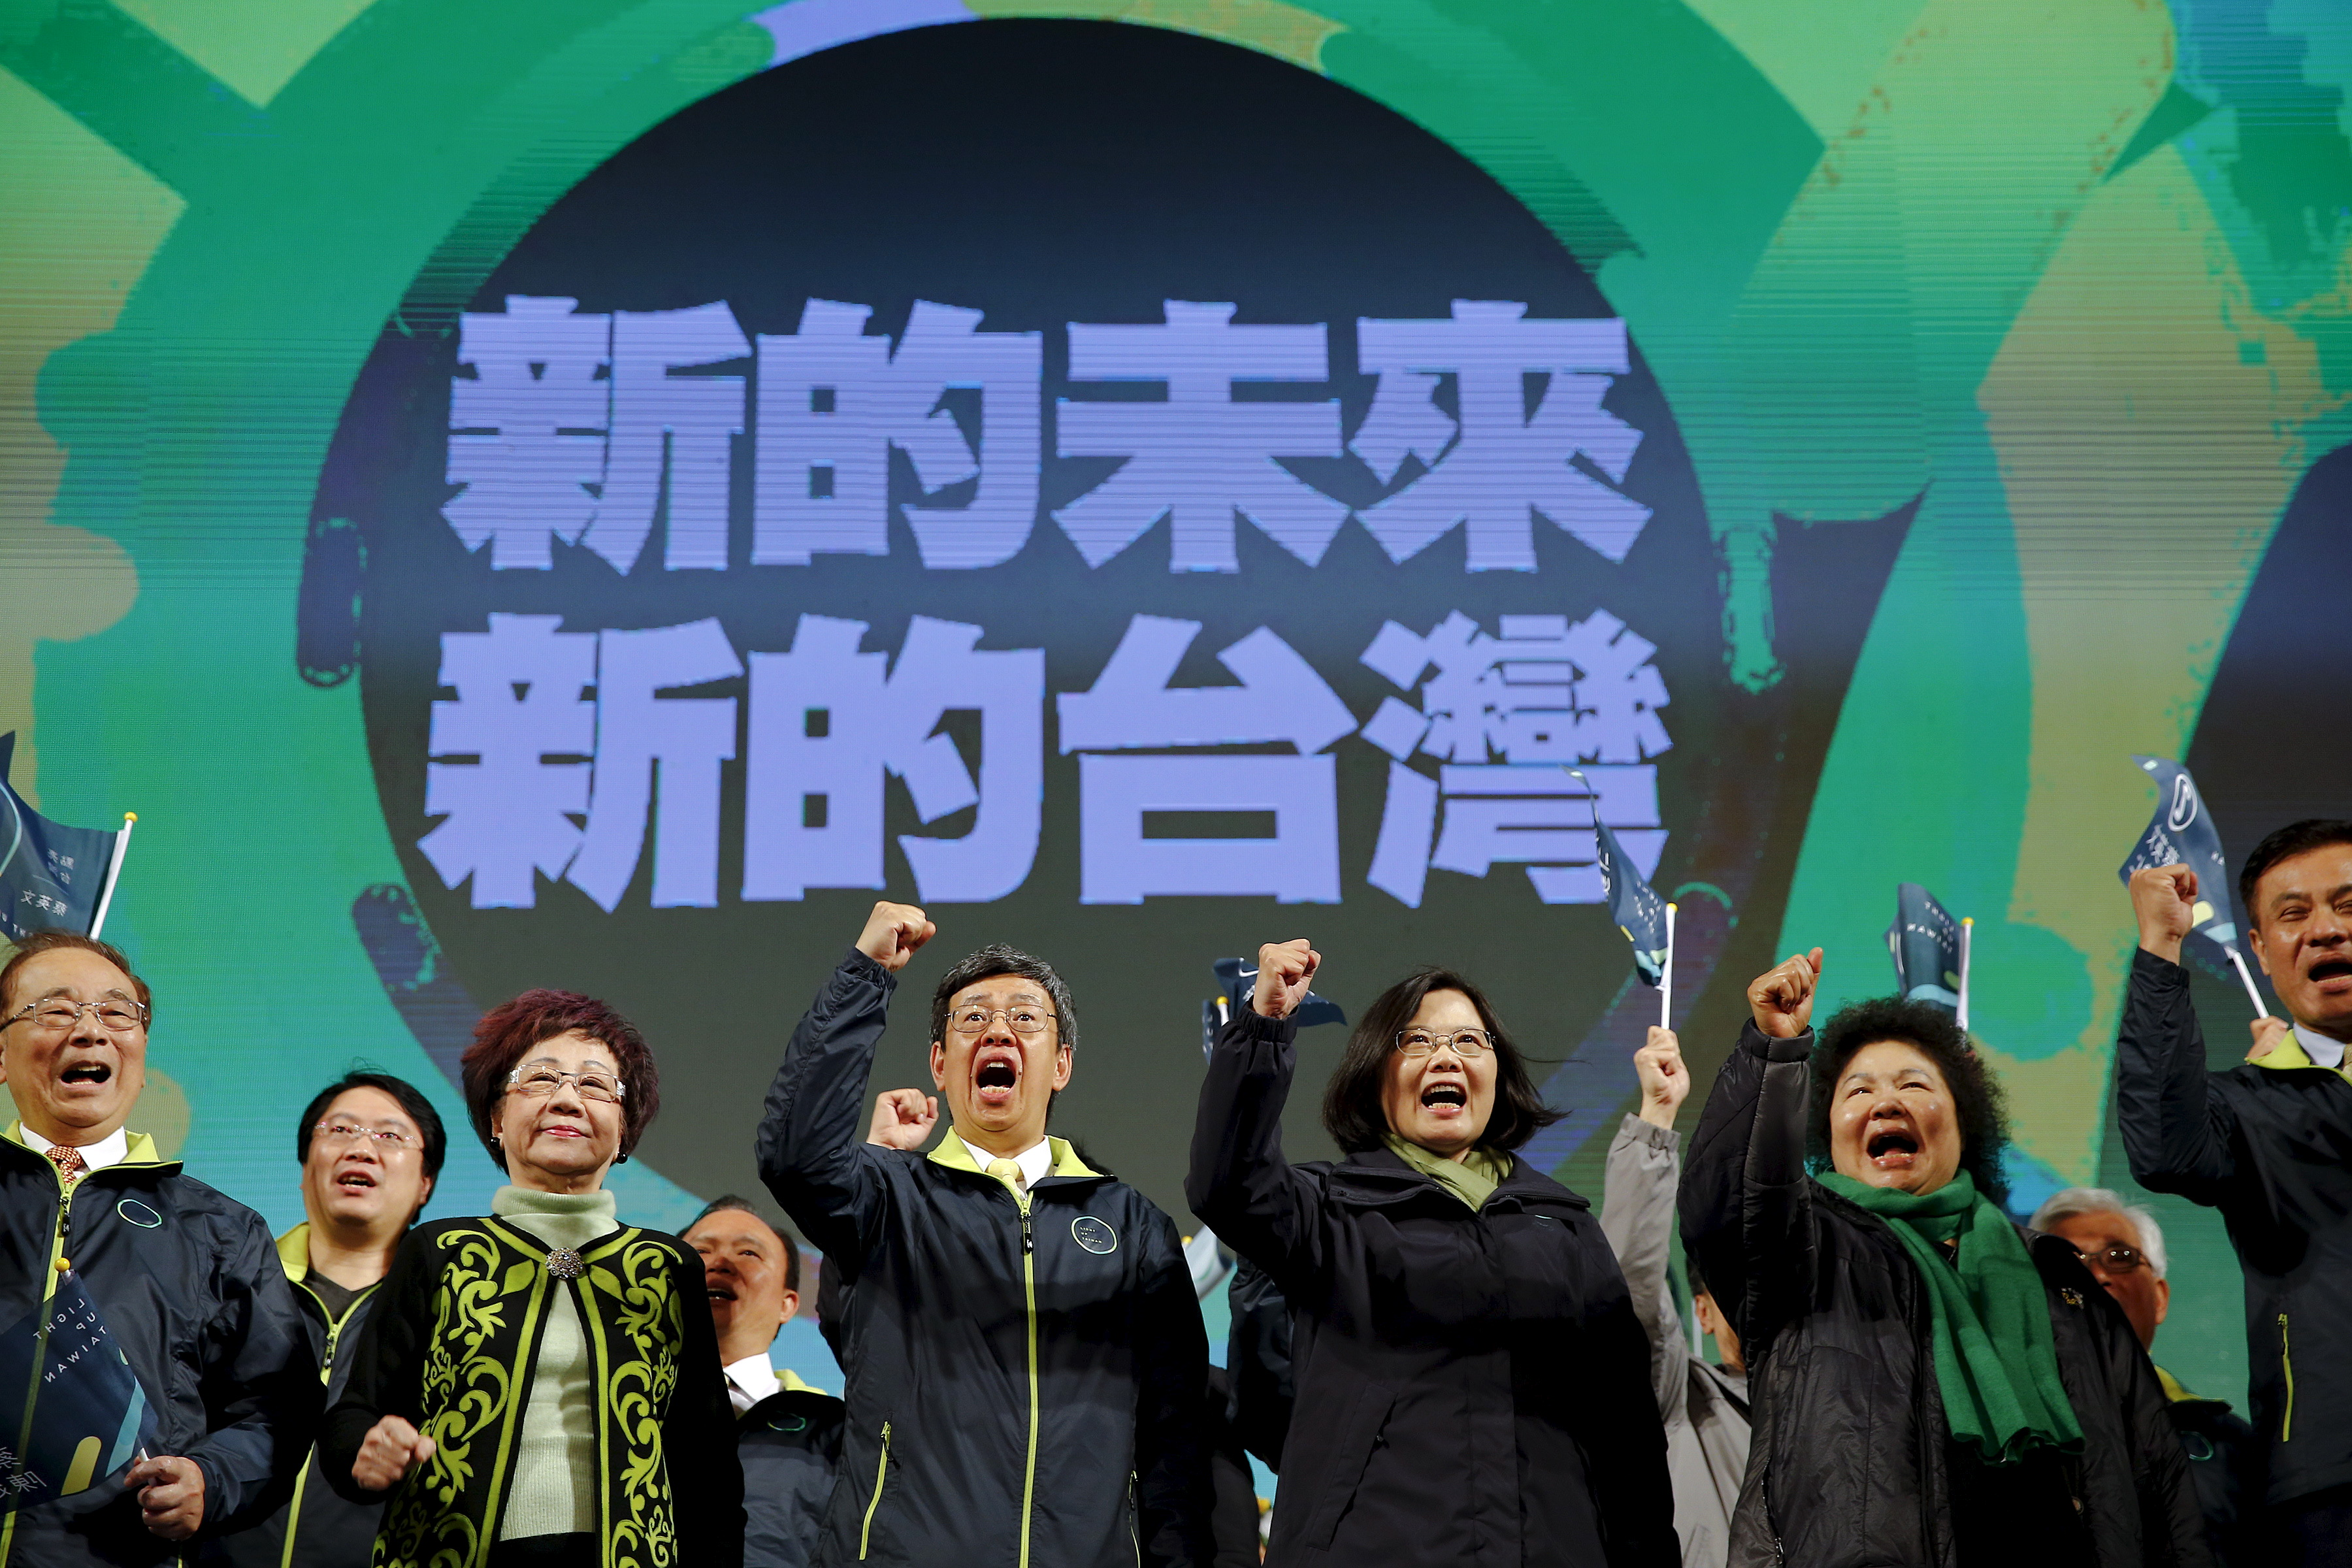 Democratic Progressive Party chairperson and presidential candidate Tsai Ing-wen, third from right, celebrates her election victory with other party members at the DPP's headquarters in Taipei on Jan. 16, 2016